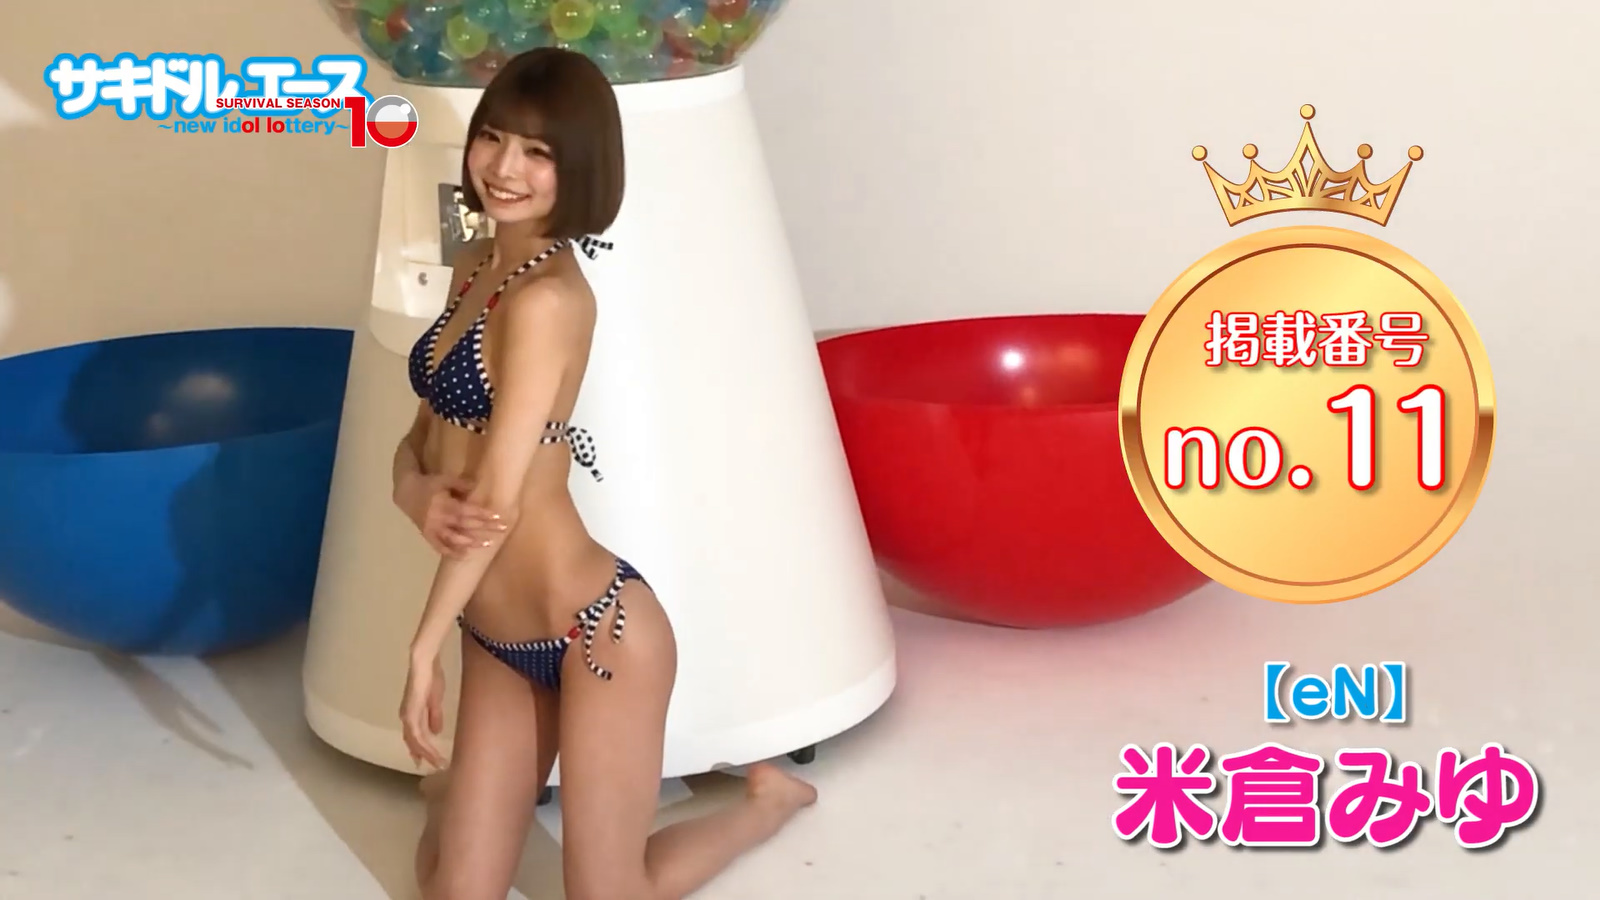 Sakidol Ace 10 Introduction Movie Capture of Swimsuit212